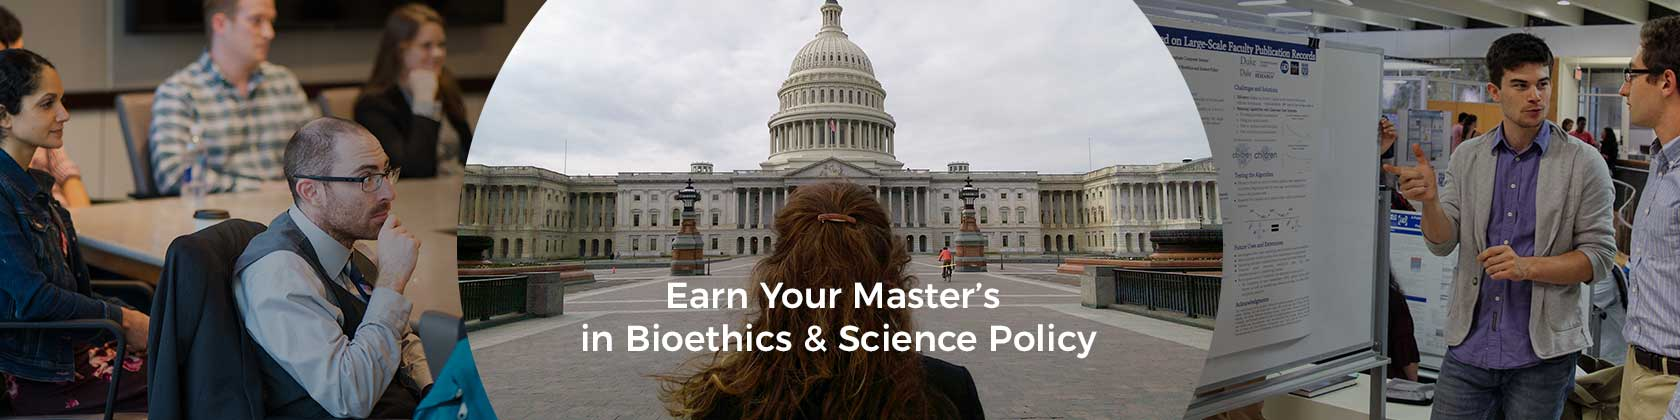 Earn Your Masters in Bioethics & Science Policy